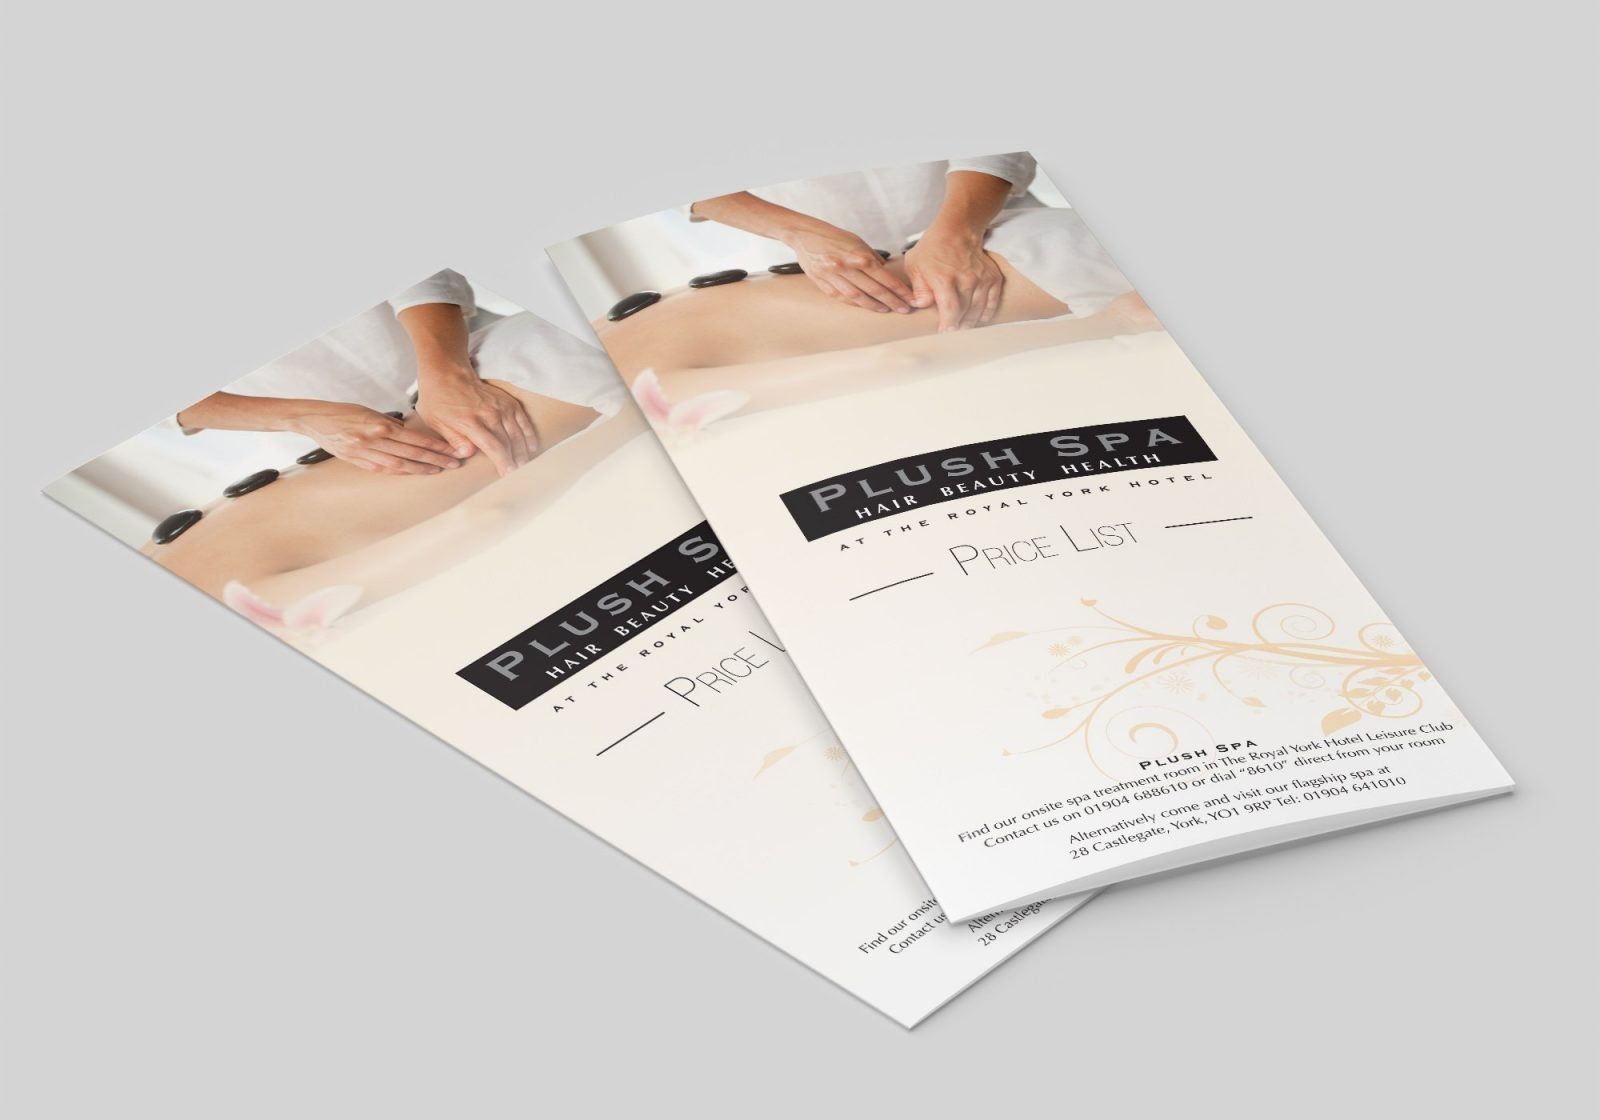 A Folded A4 Leaflet for Push Spa Hair dressers showing the front page